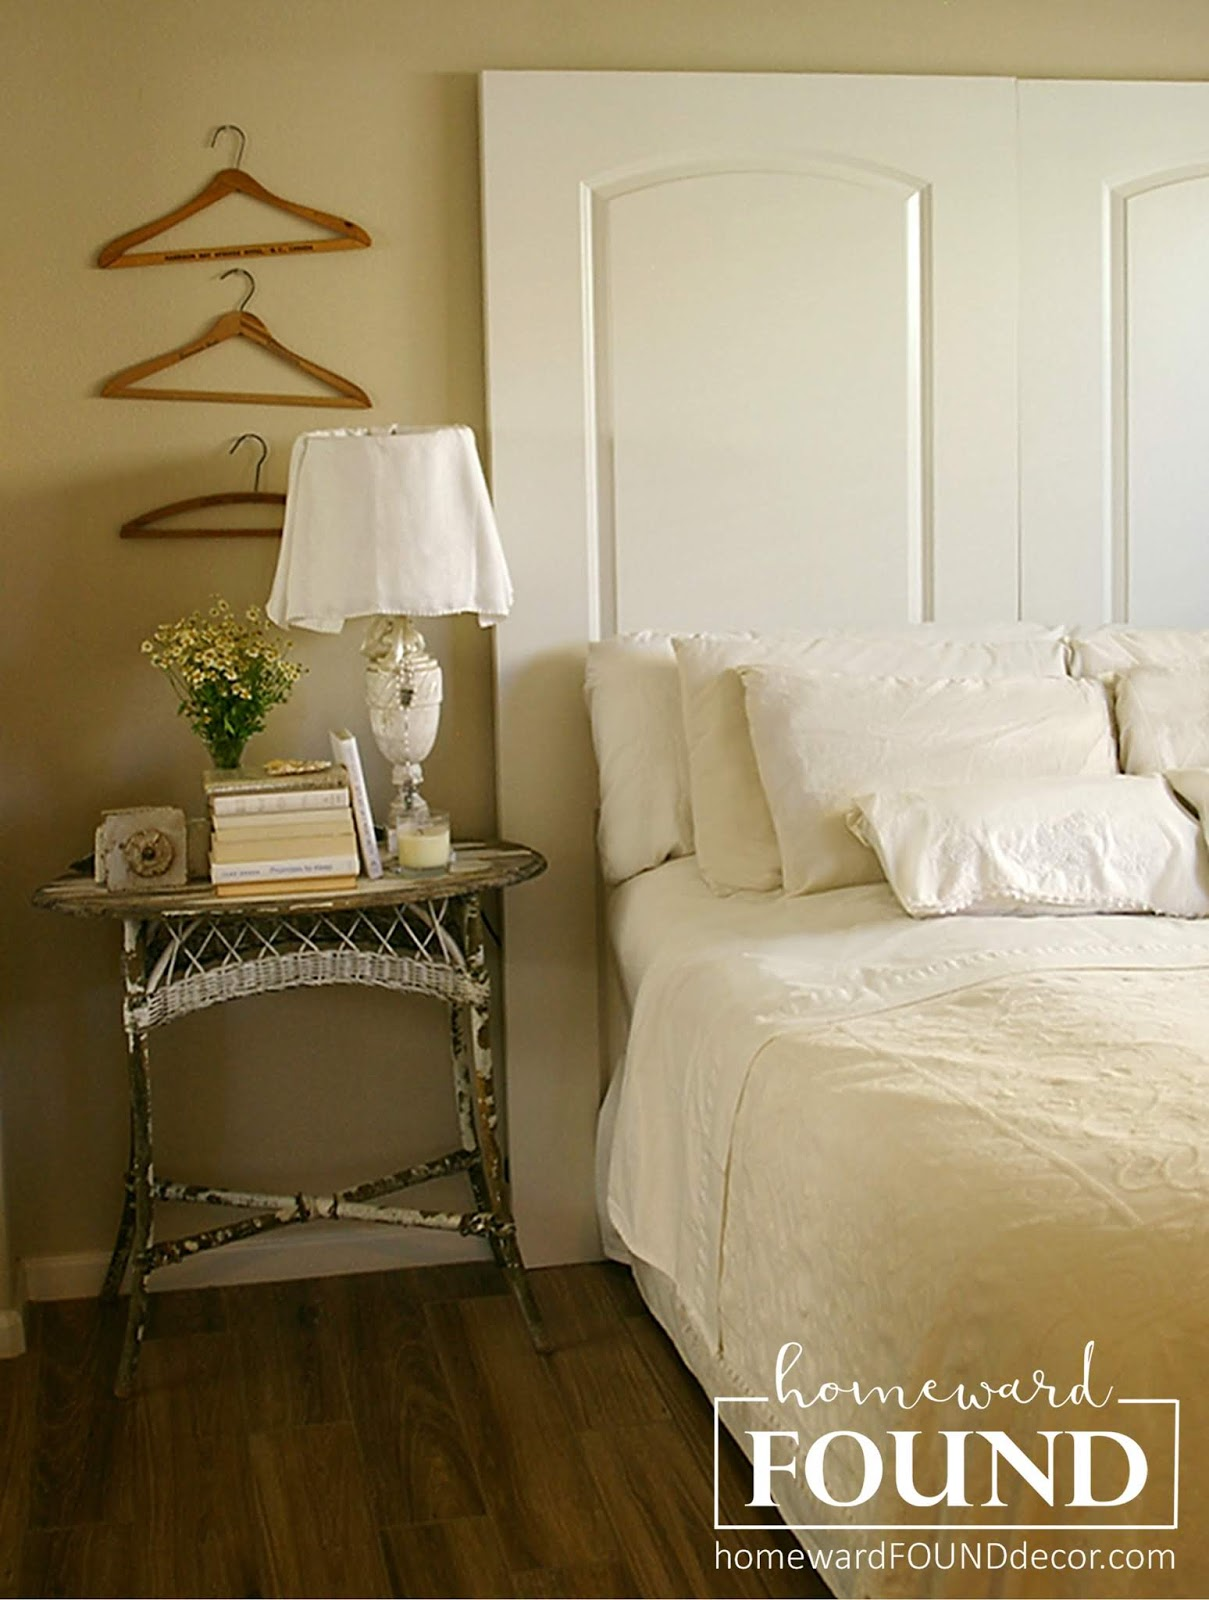 diy headboard to a-door... homewardFOUND decor